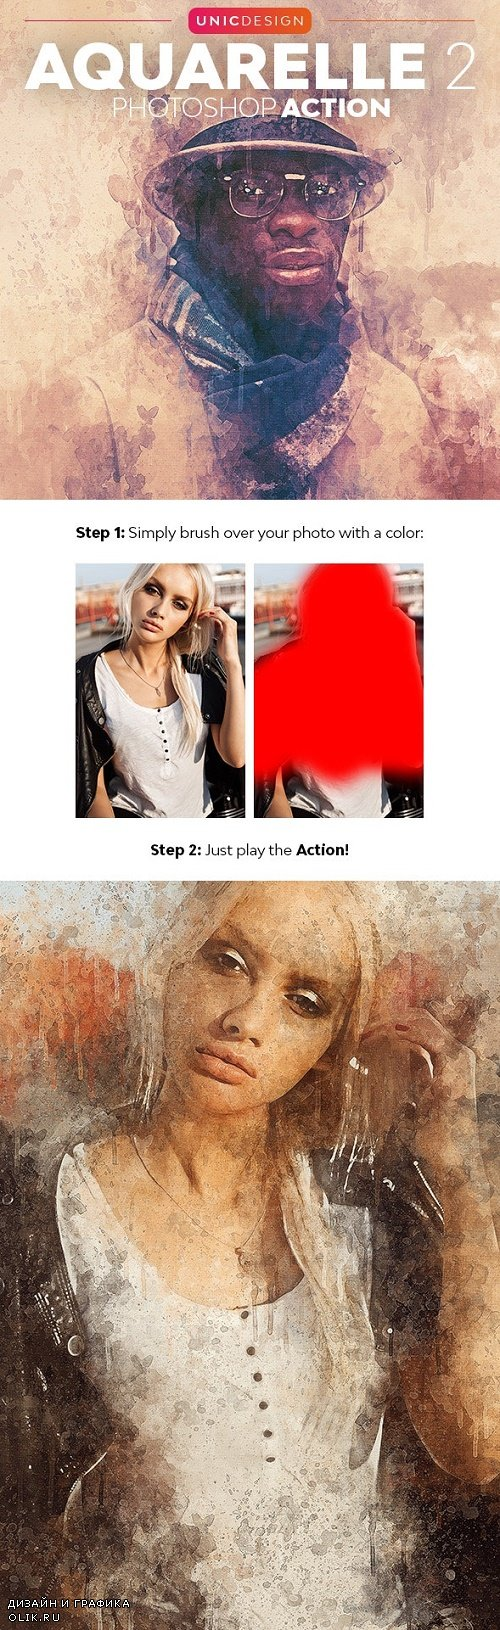 Aquarelle 2 Photoshop Action 24571911